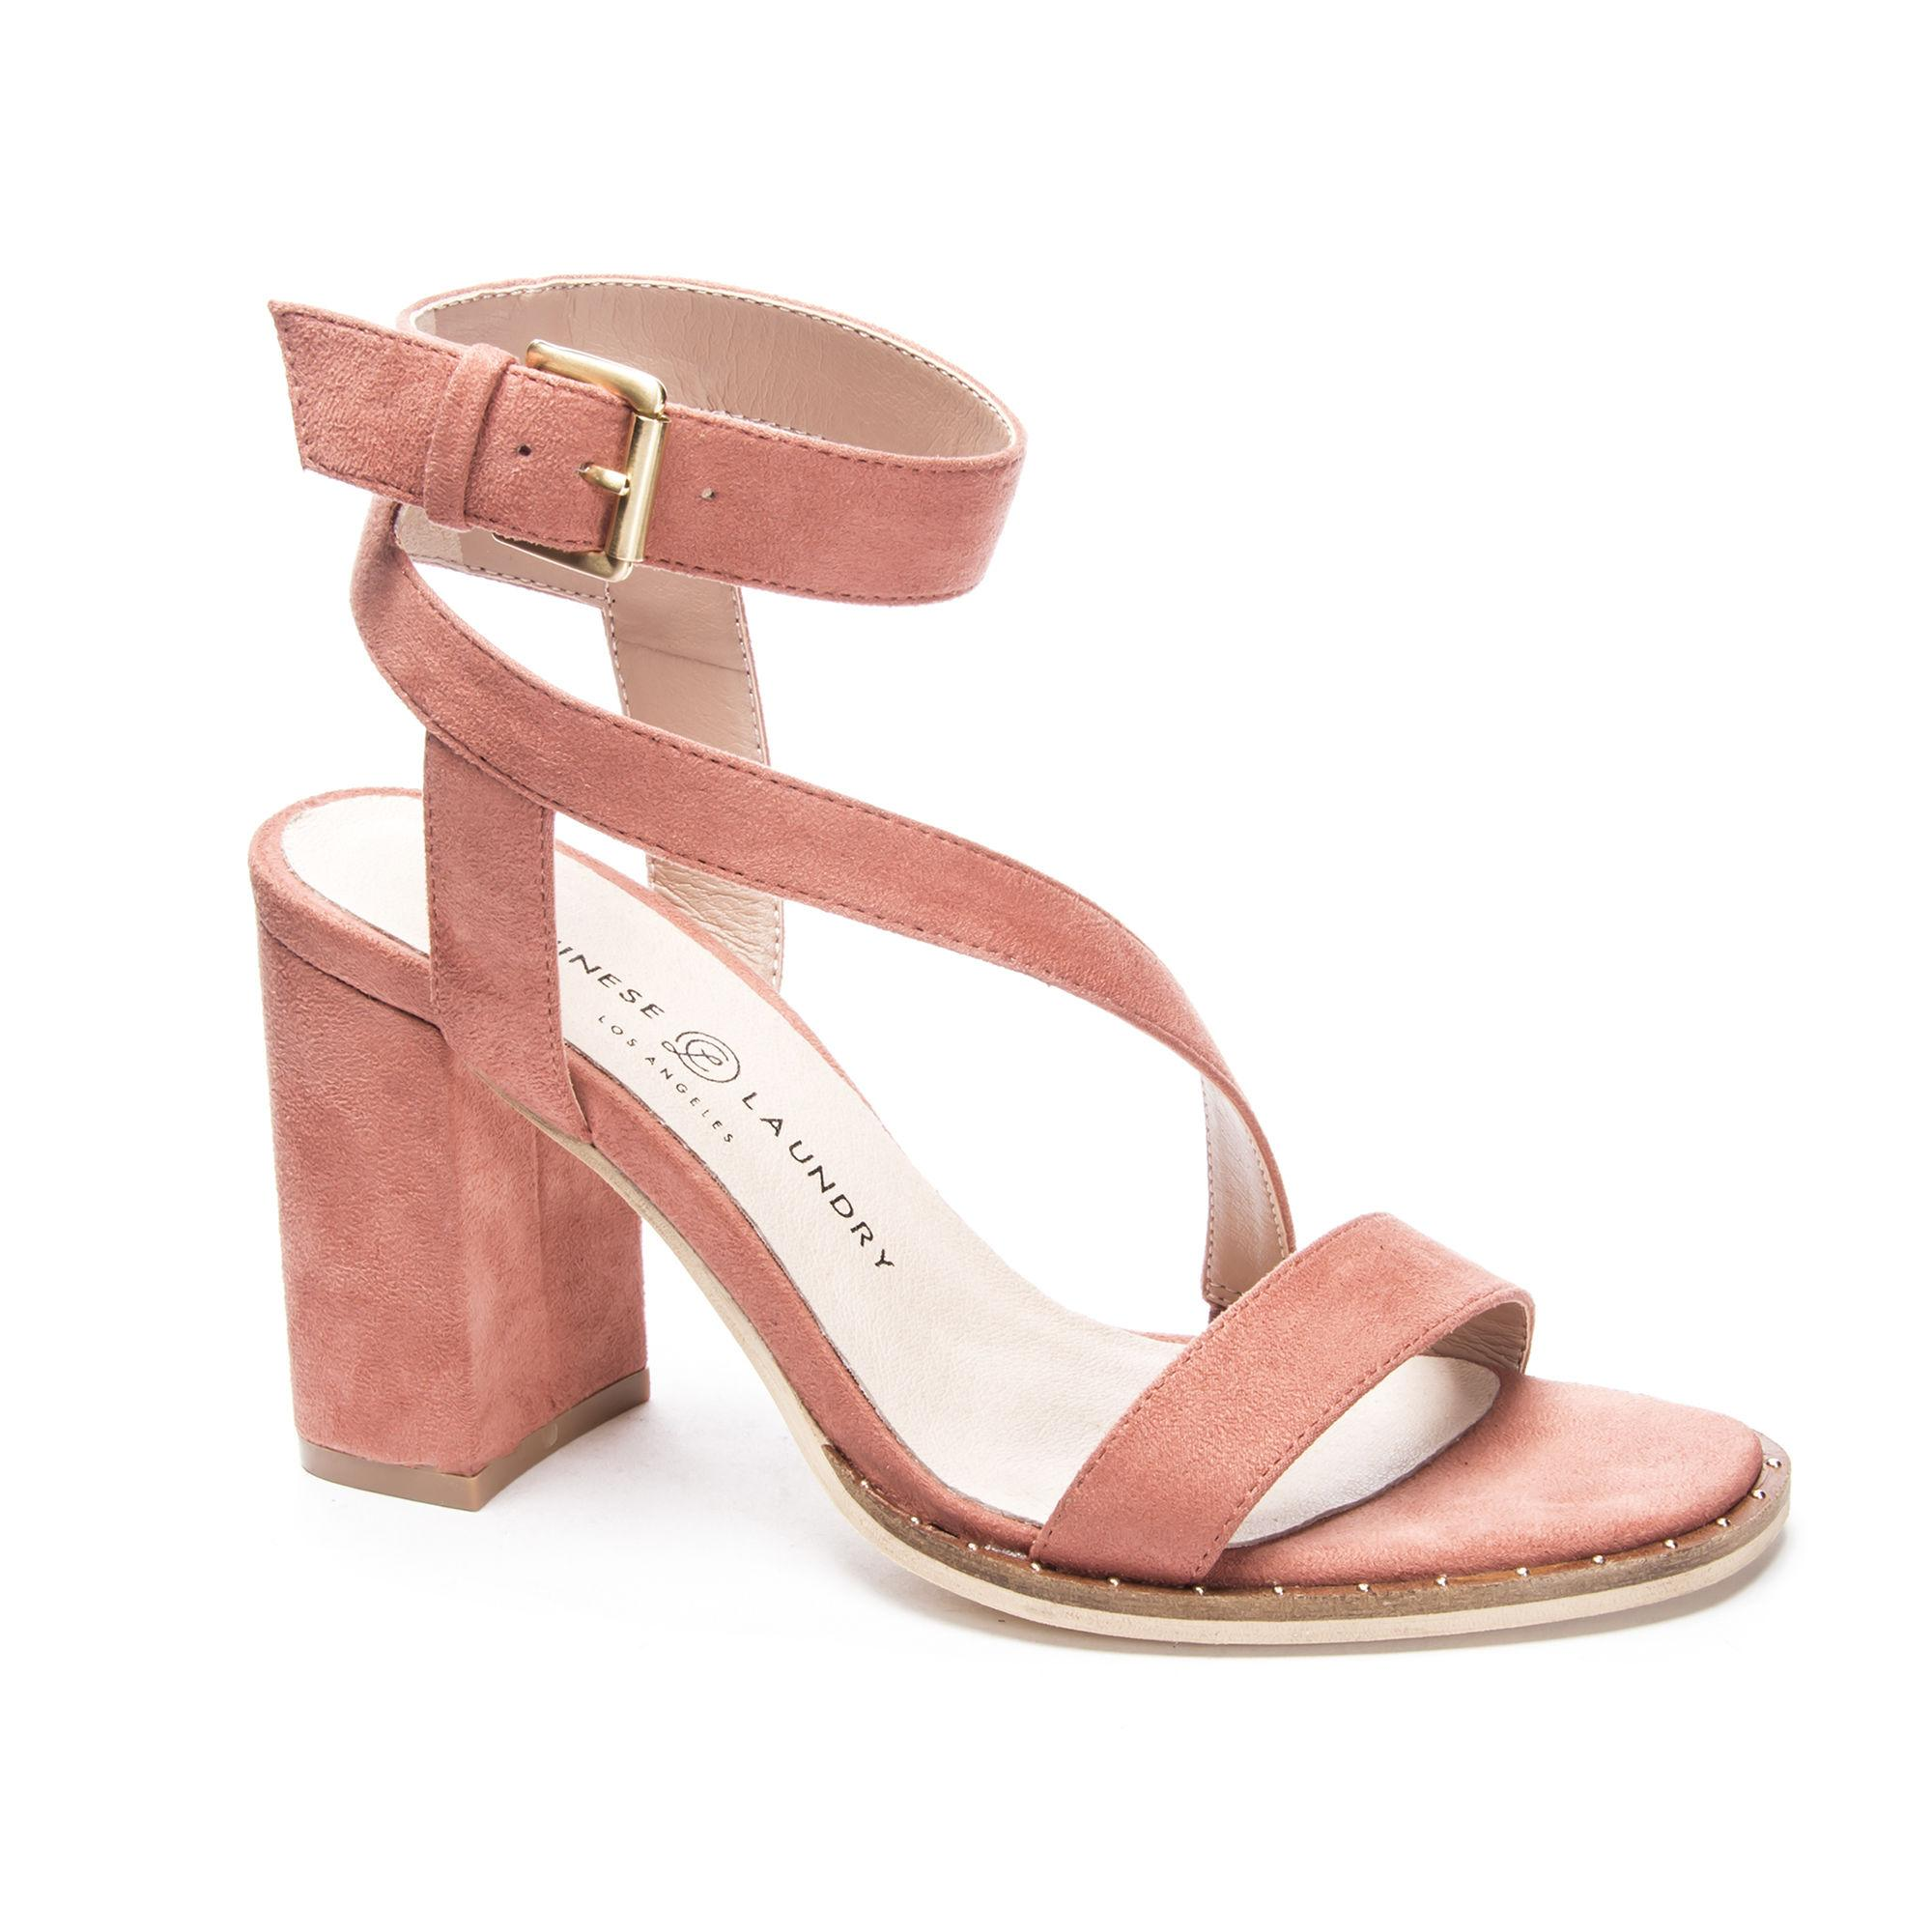 a2fc5a26362 Lyst - Chinese Laundry Simi Block Heel Sandal in Pink